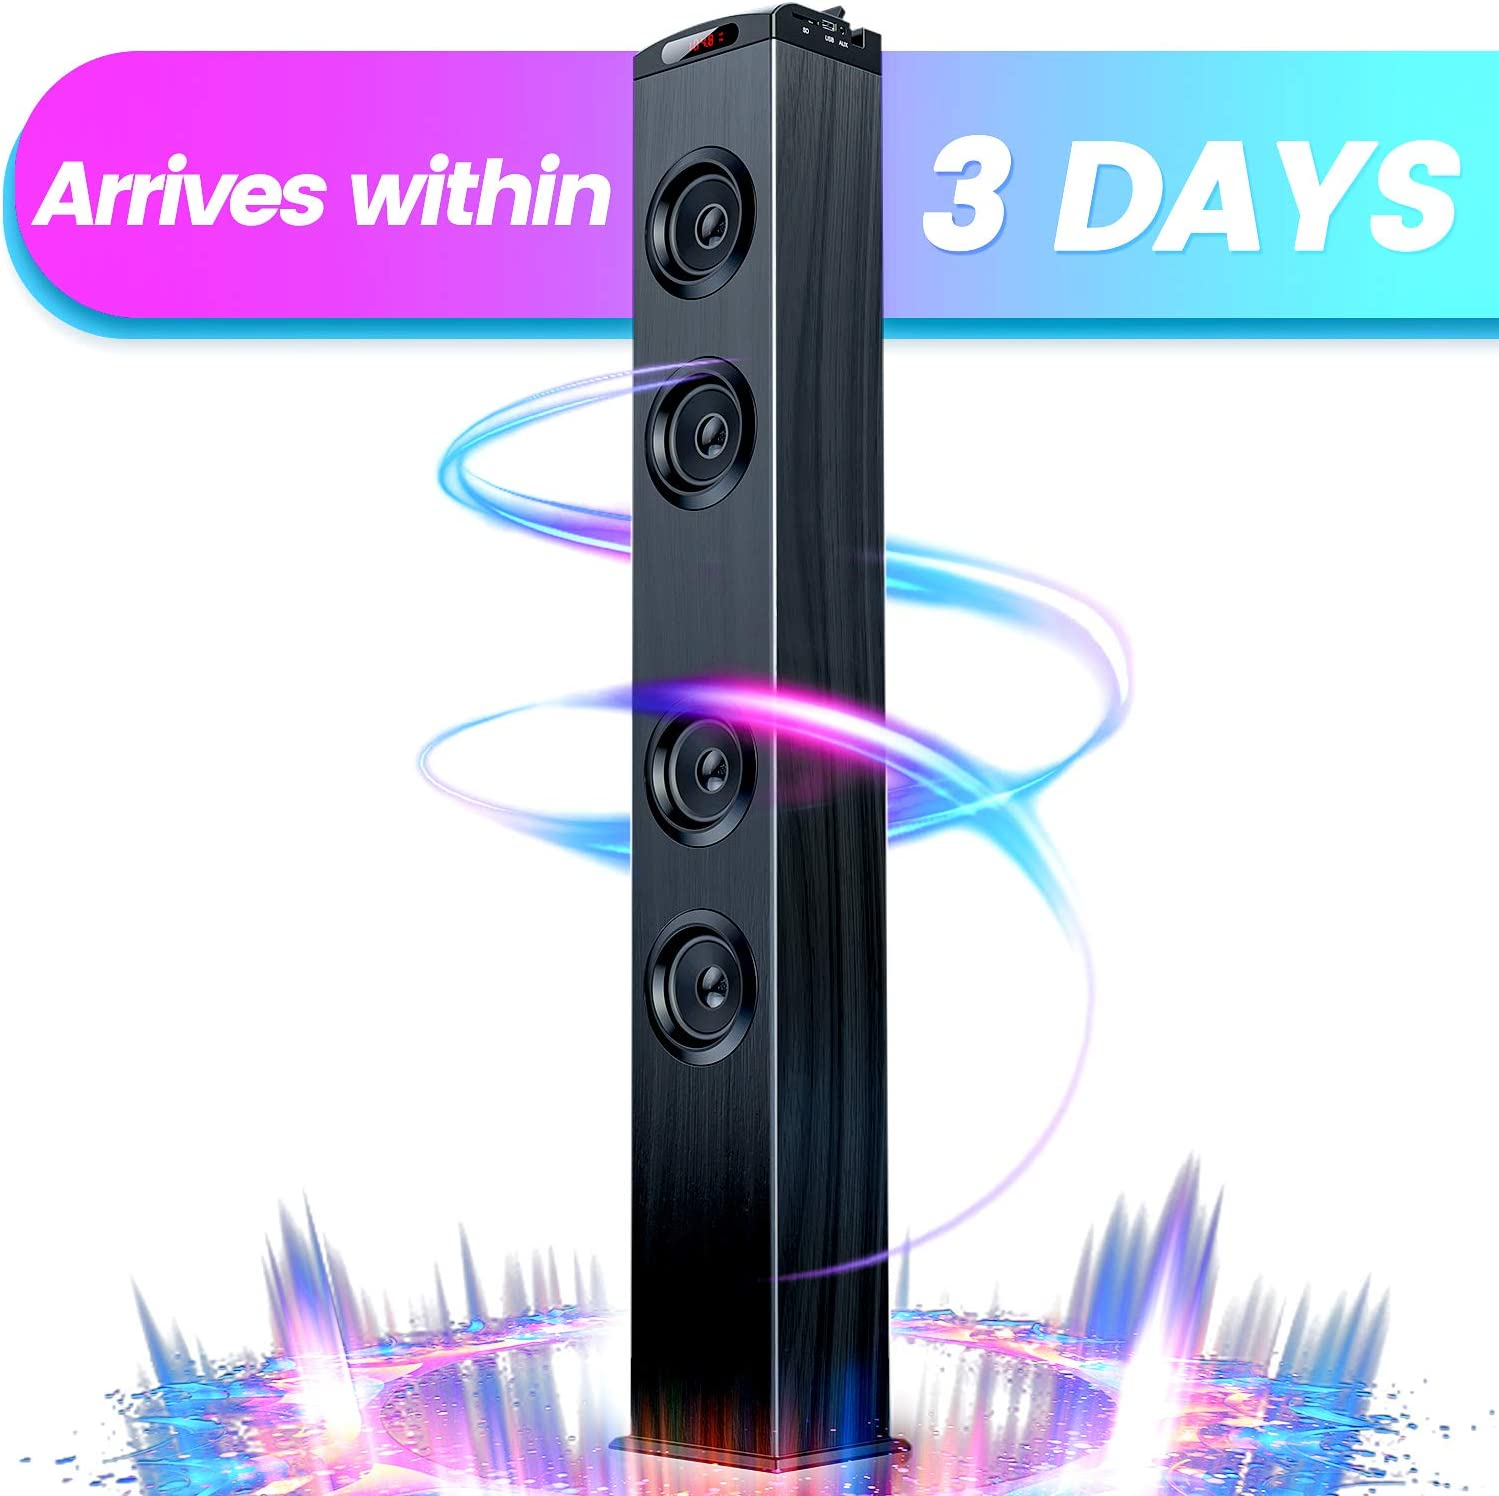 Floor Standing Bluetooth Tower Speaker, Floor Speakers for Home Stero System, Floor Standing Speakers Home Theater, VENLOIC Bluetooth Tower Speakers with Bass